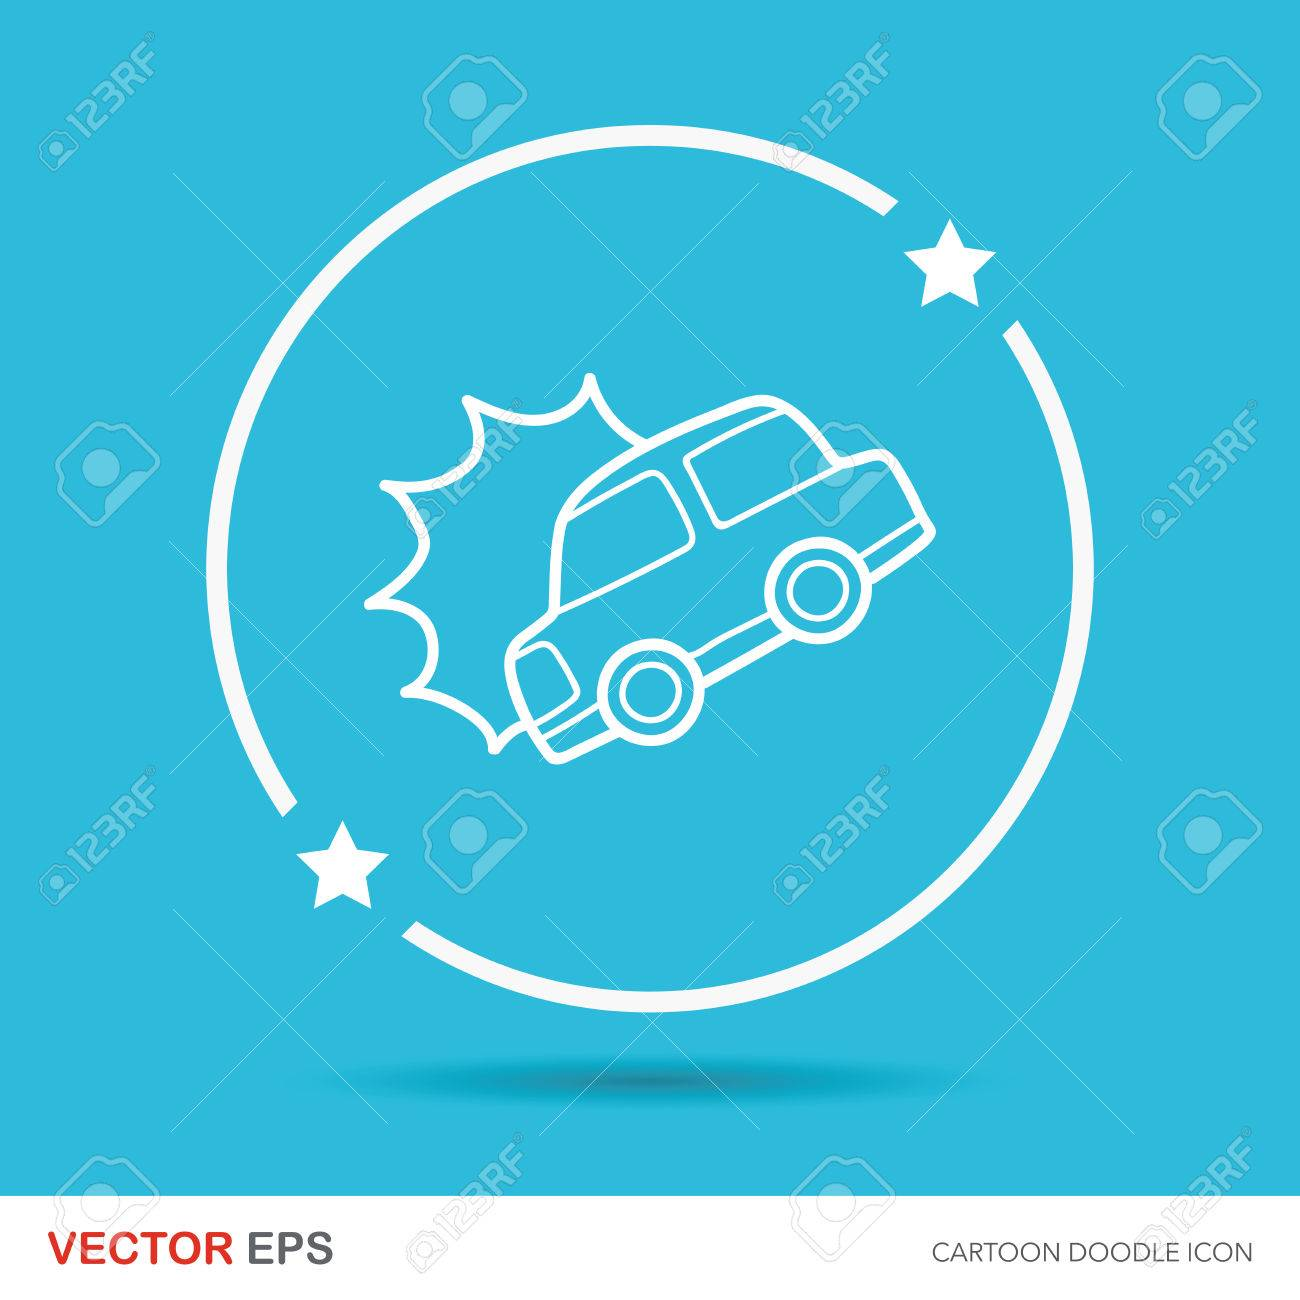 Car Accident Doodle Royalty Free Cliparts, Vectors, And Stock ...